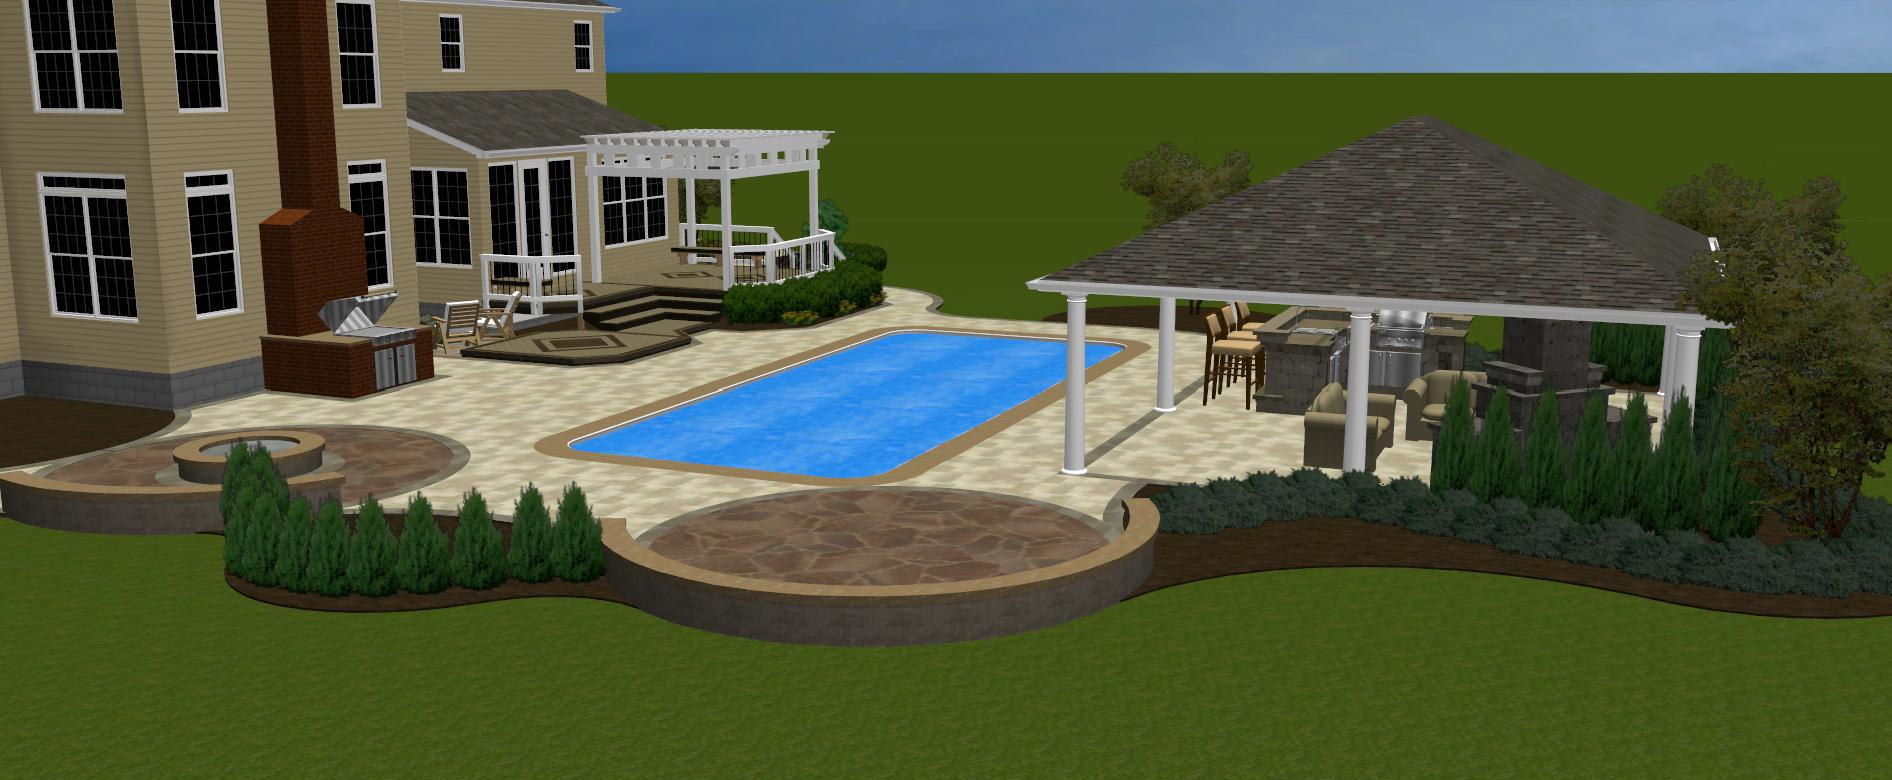 Columbus OH dream backyards | Columbus Decks, Porches and Patios ...